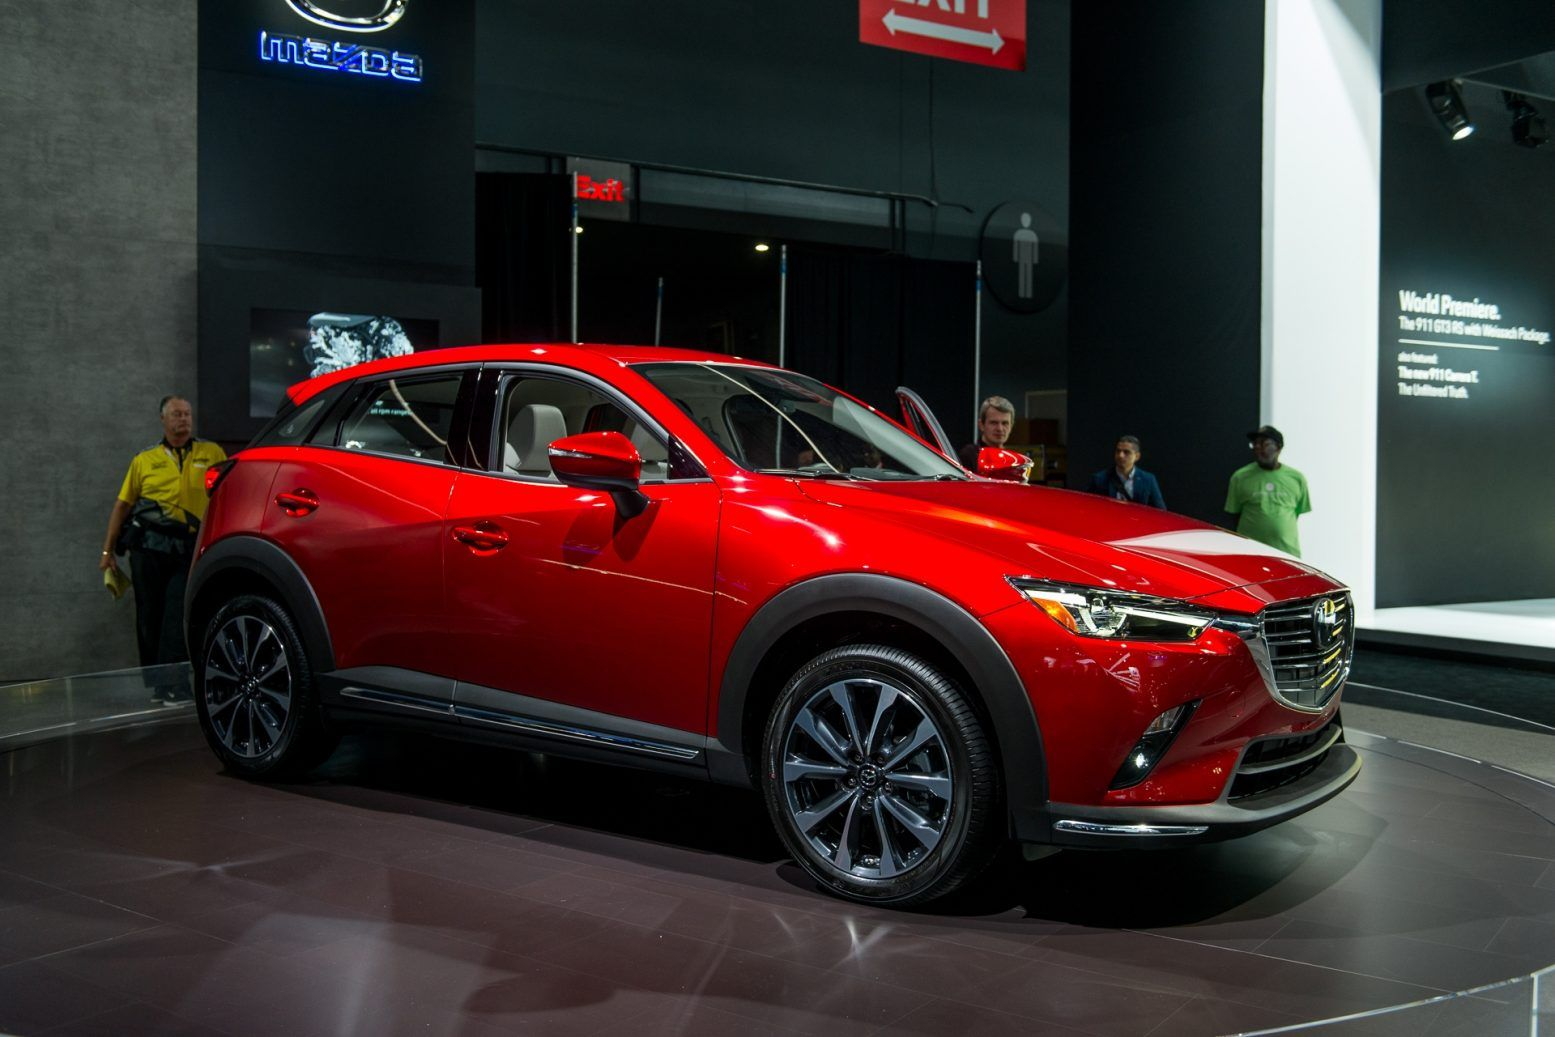 Mazda Cx 3 Release Date >> The Cx 3 Subcompact Crossover Is Still A Fresh Model In The